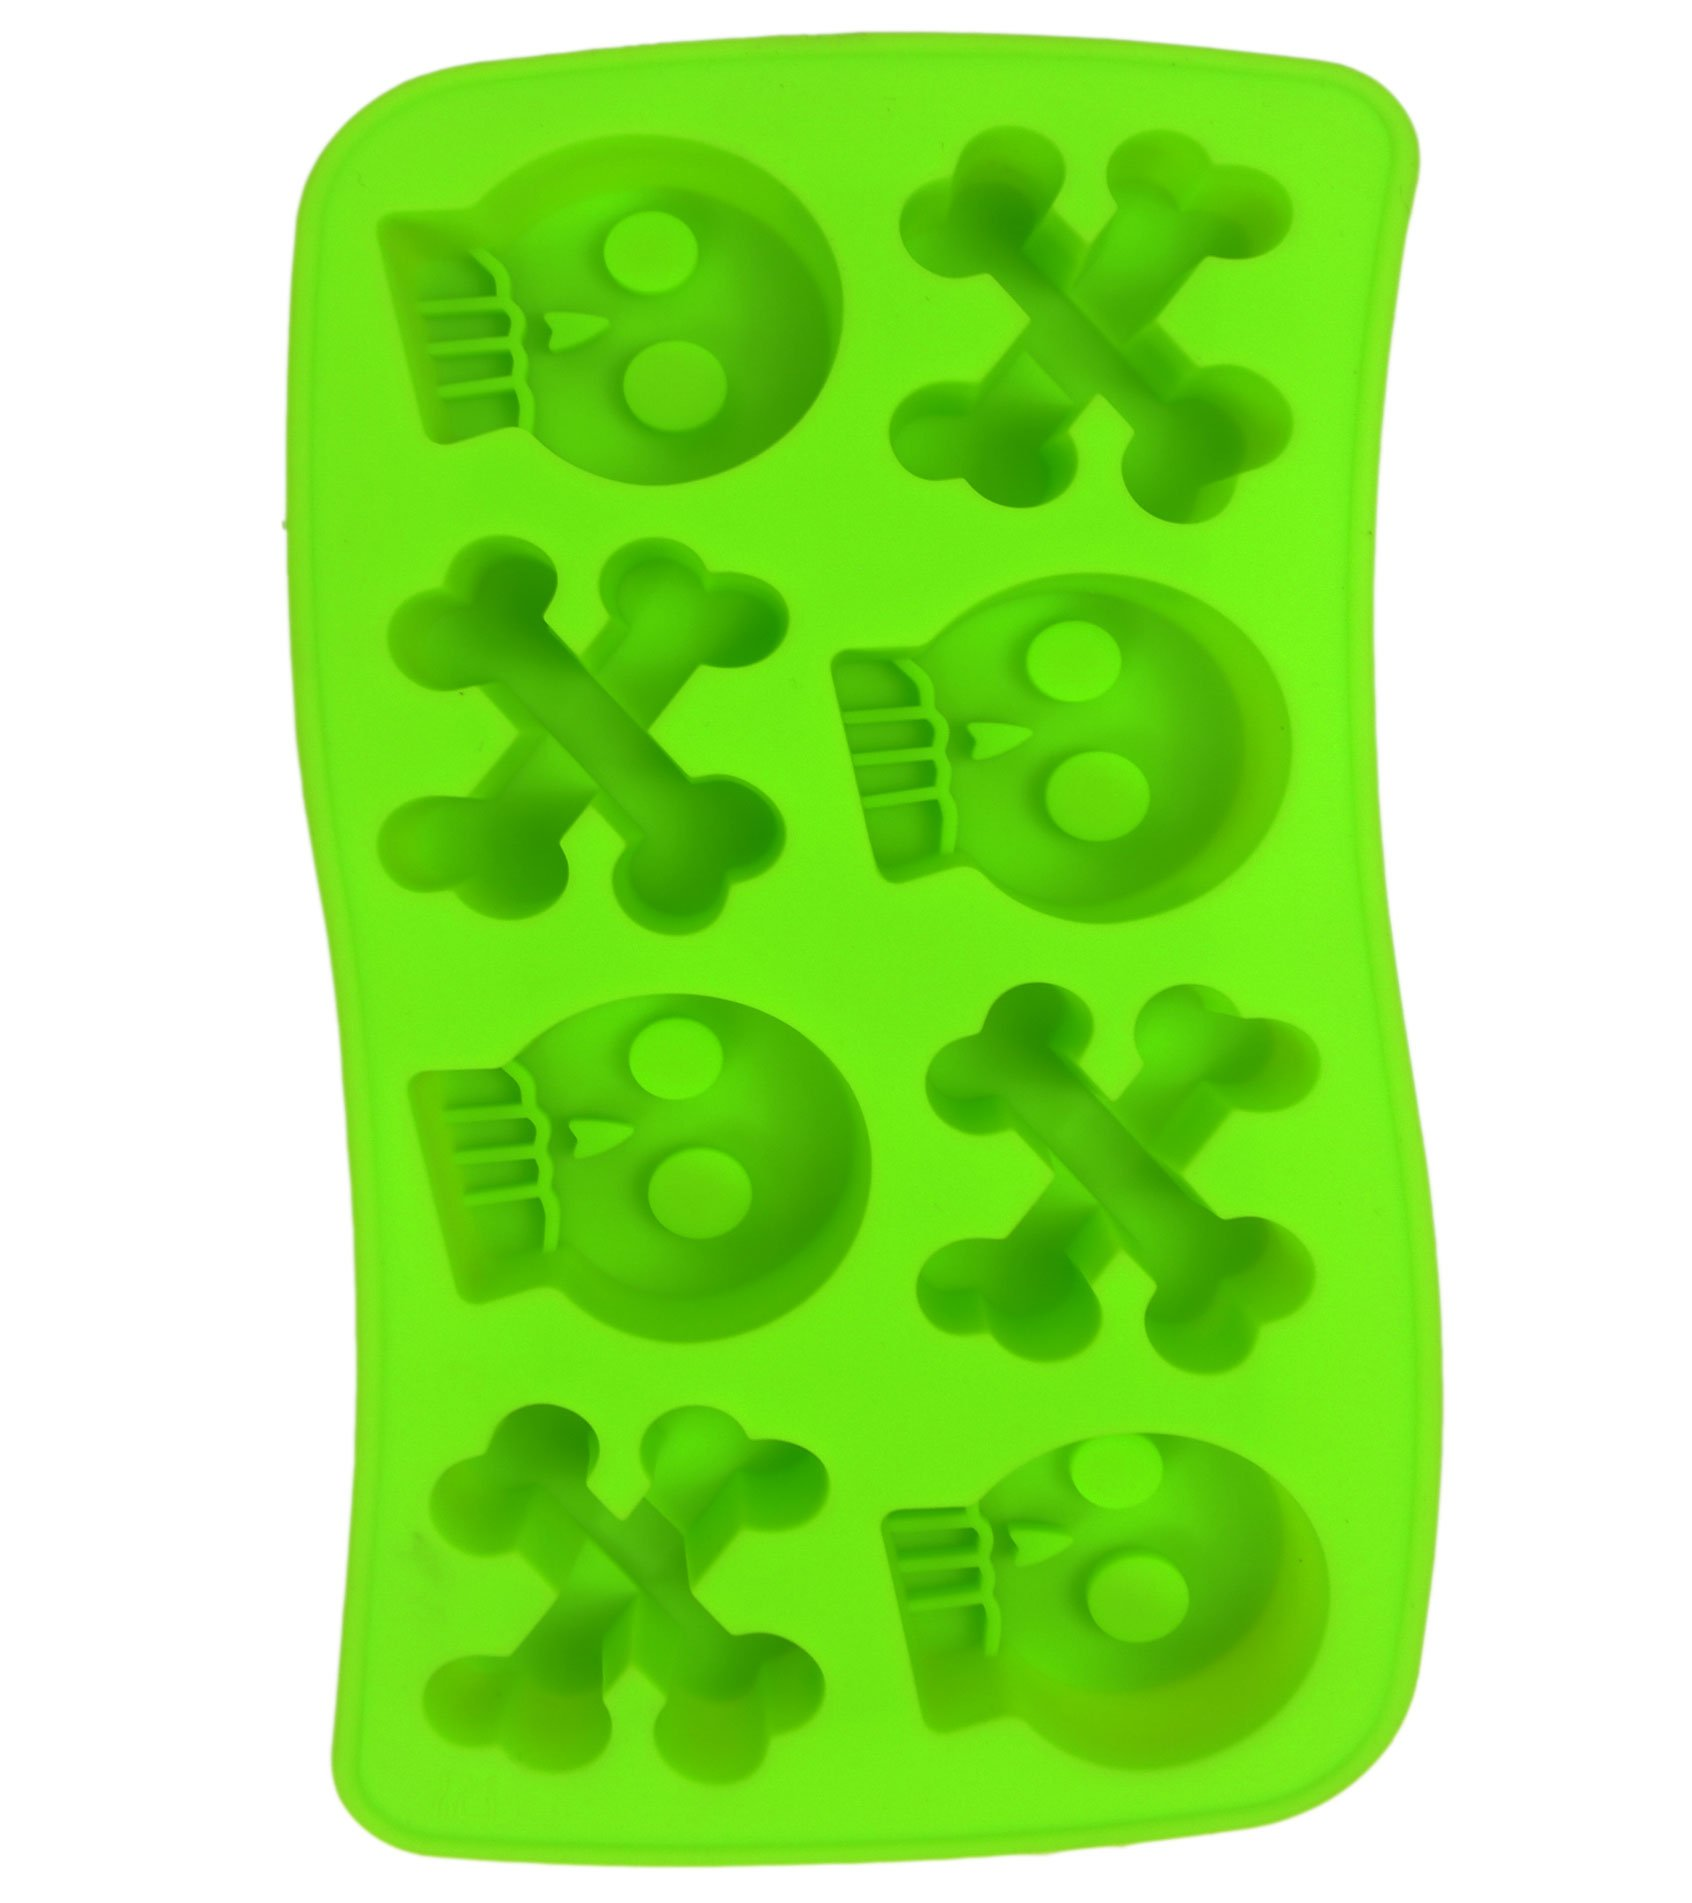 DIY Silicone Chocolate Lollipop Making Mold Ice Candy Sweet Maker,Green01